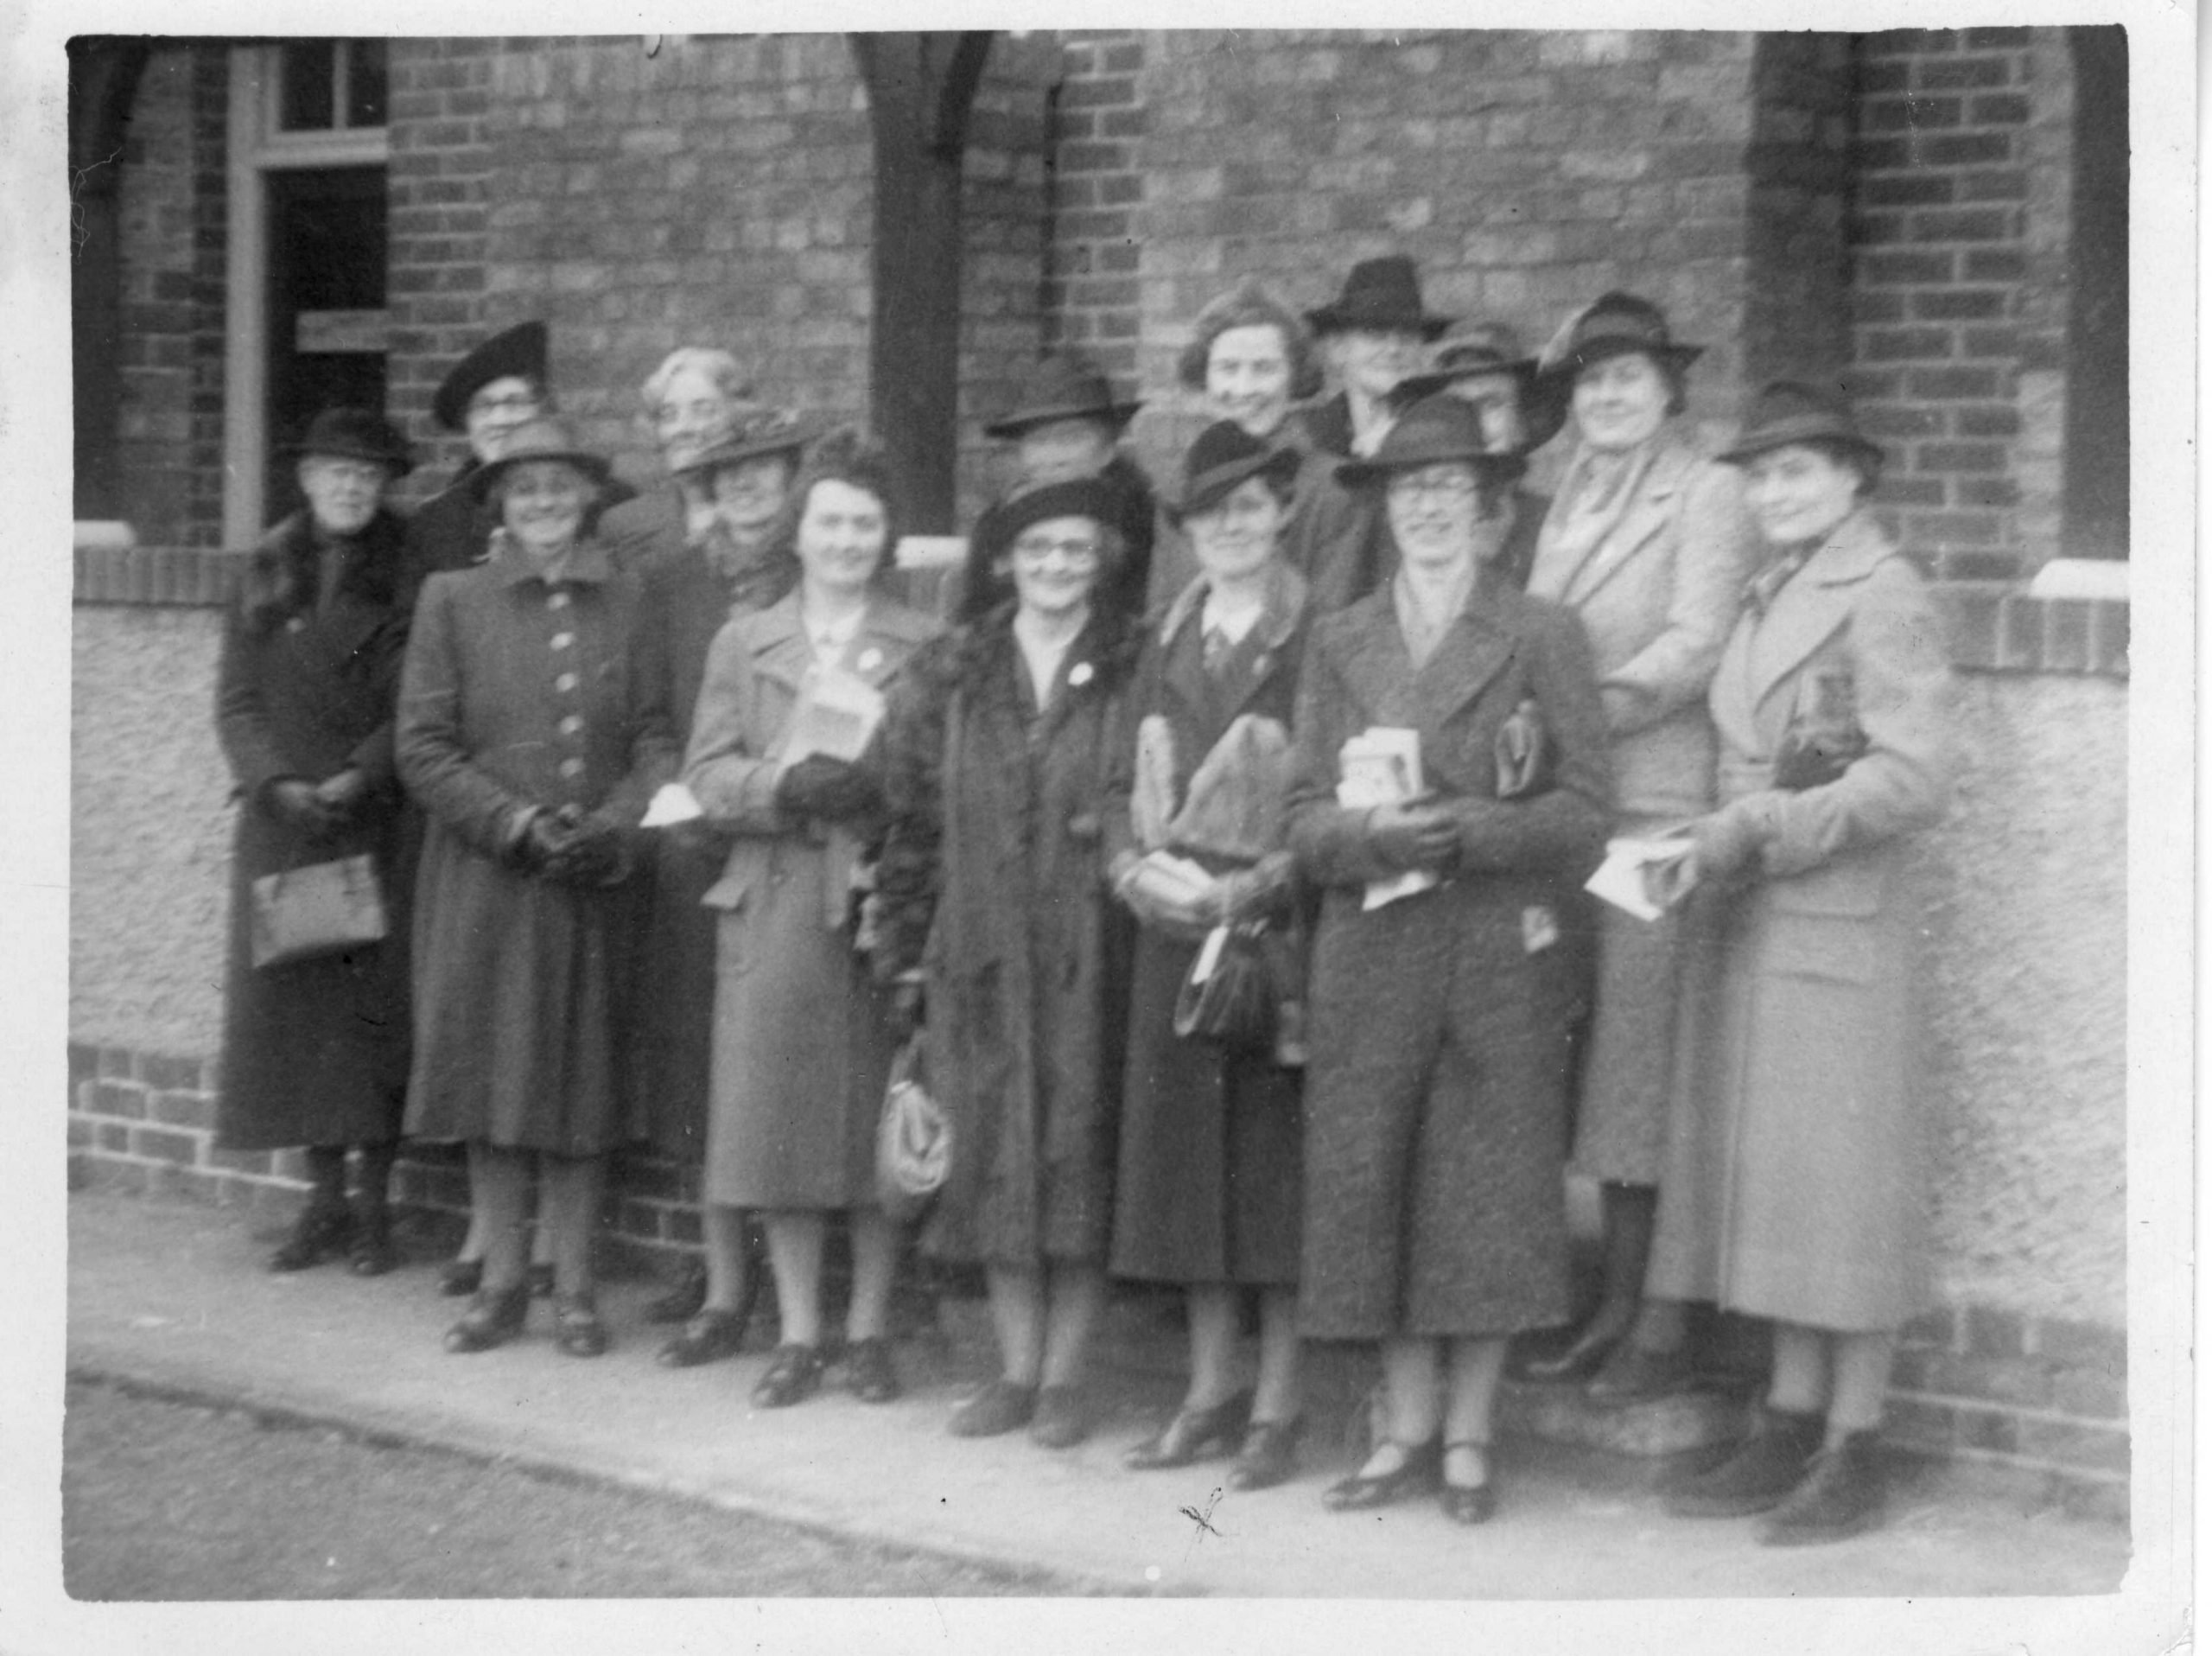 A black and white photograph of a group of women standing outside a train station